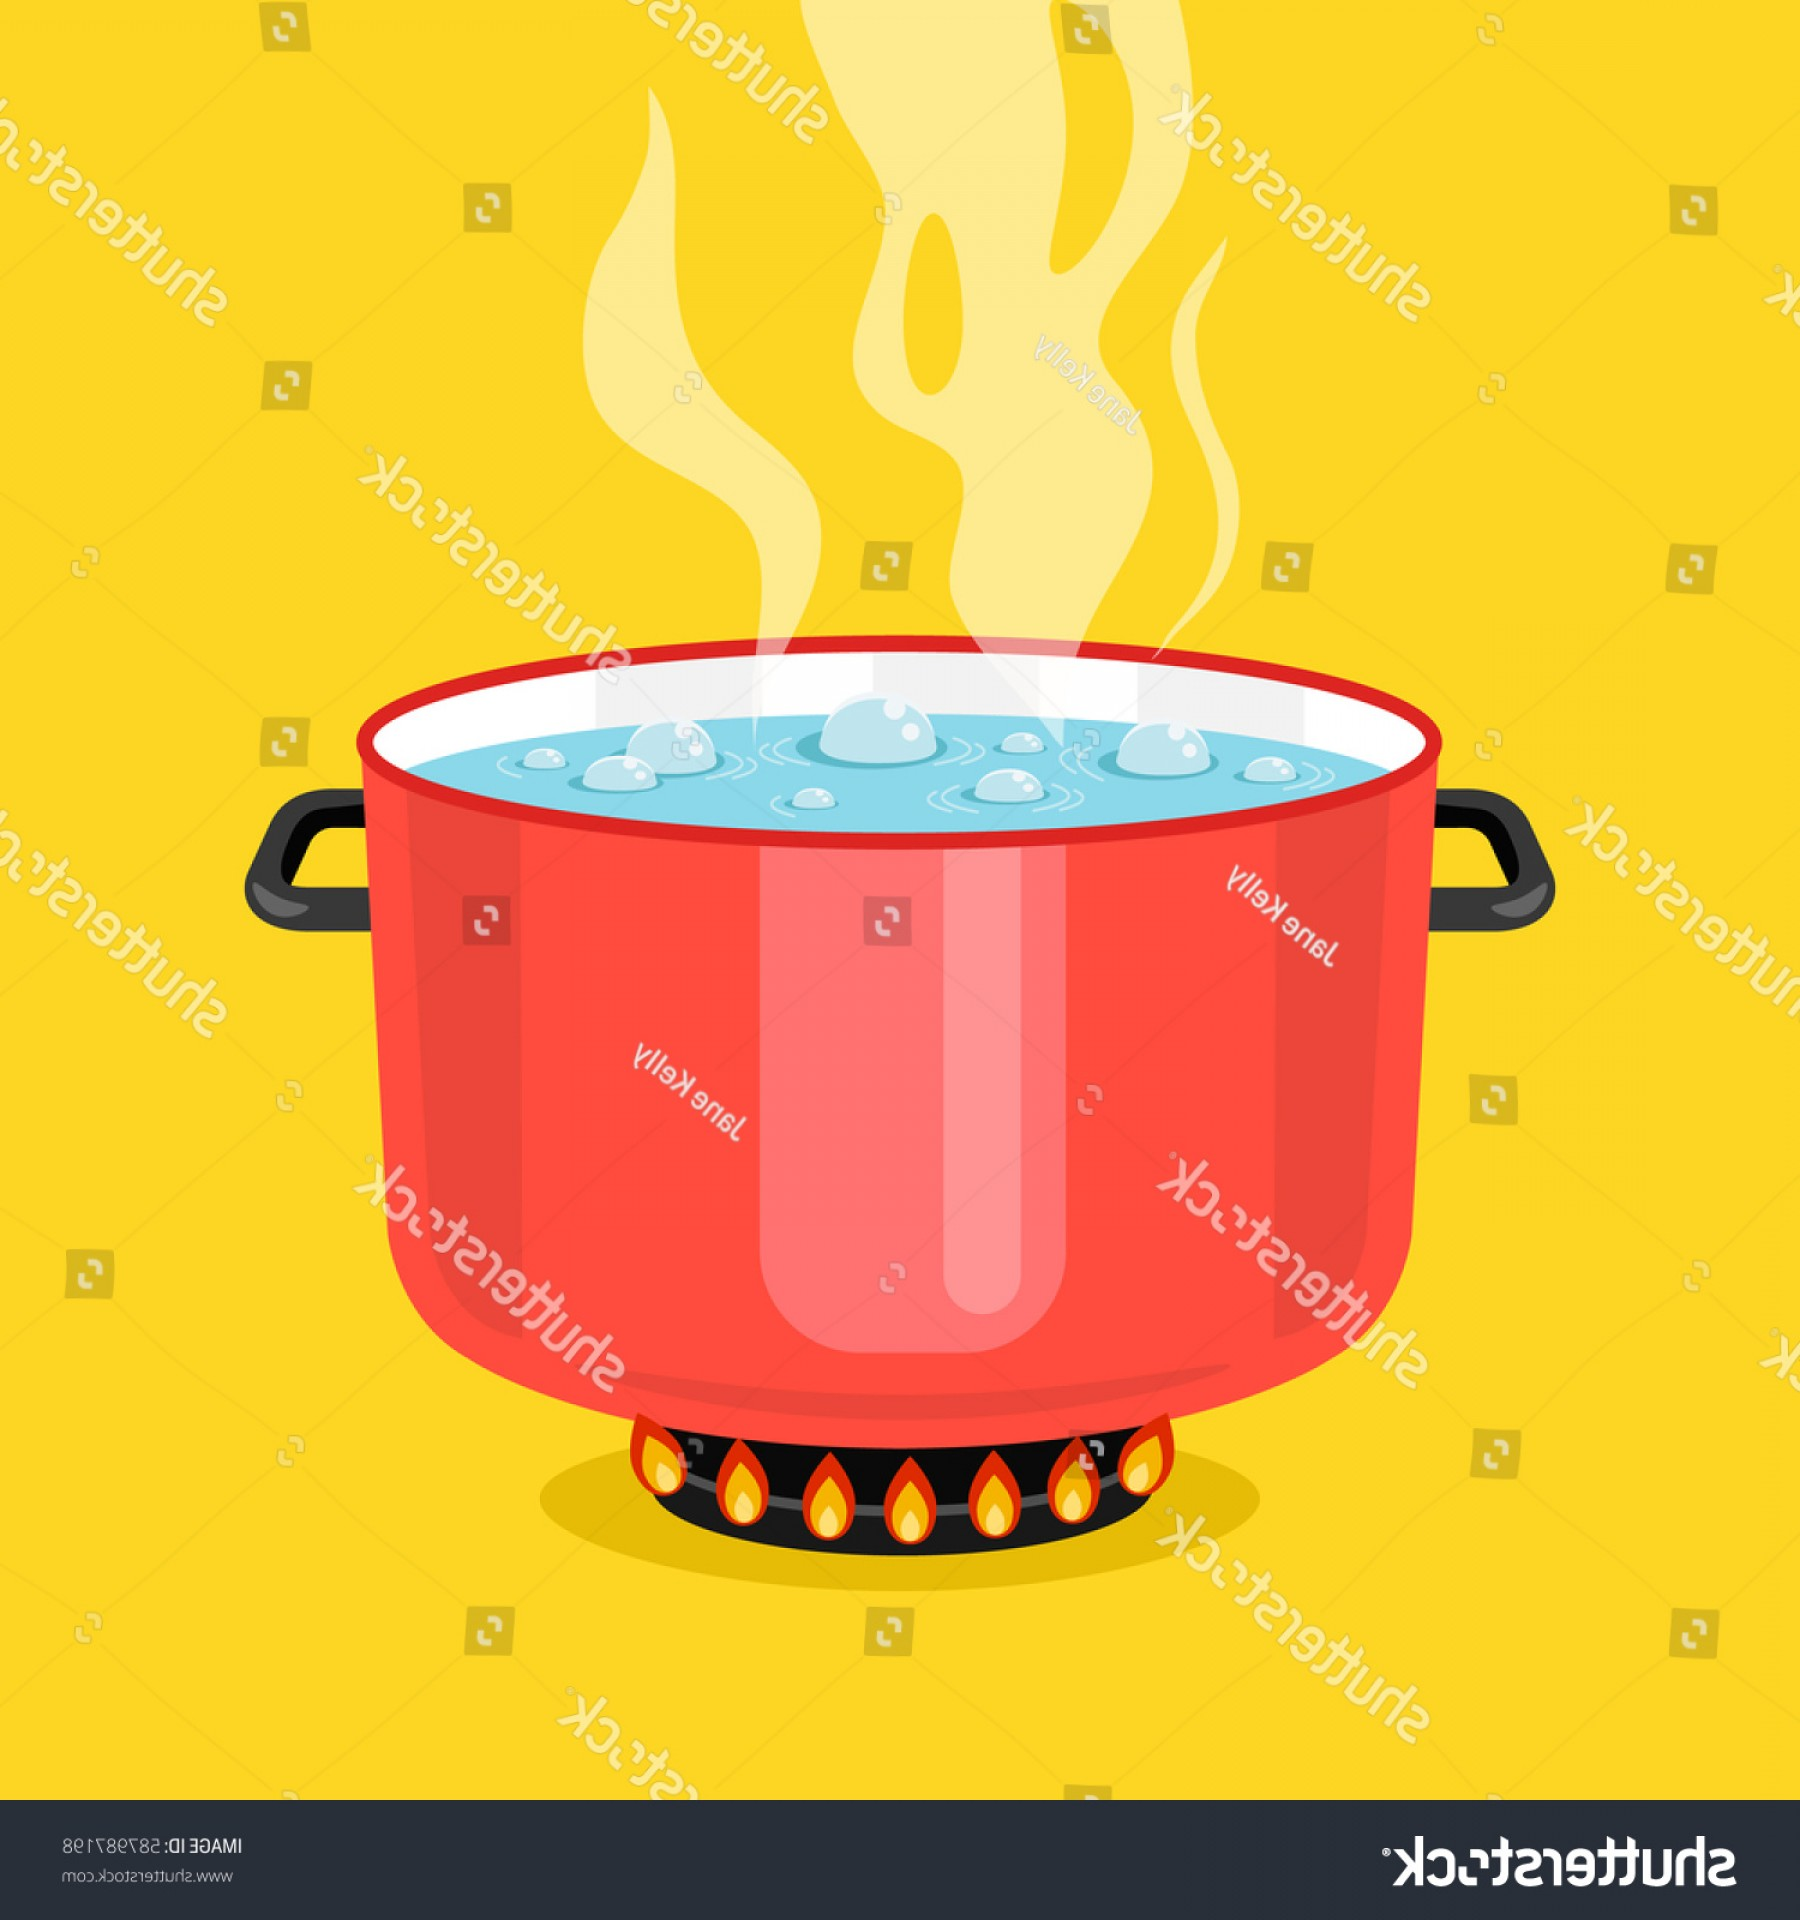 Big Cook With Cooking Pot Vector: Boiling Water Pan Red Cooking Pot